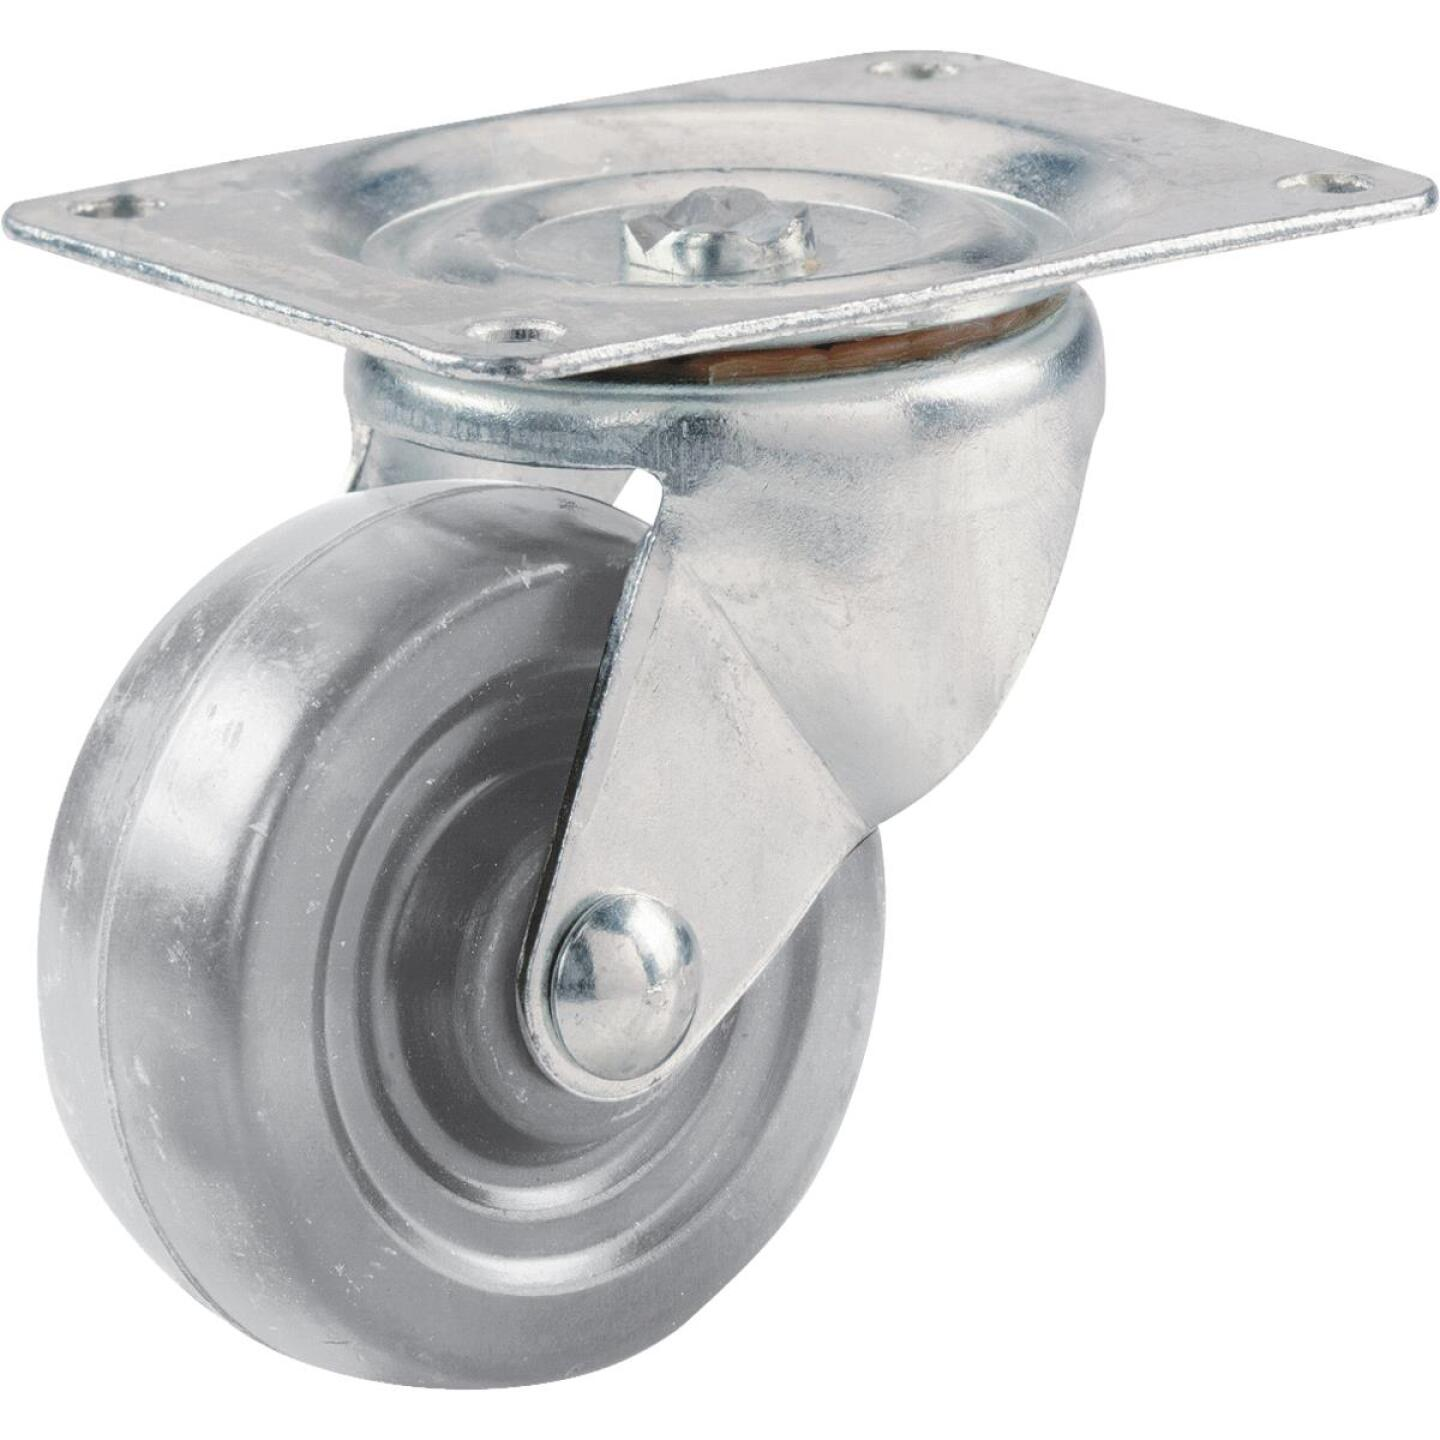 Shepherd 4 In. General-Duty Hard Rubber Swivel Plate Caster Image 1